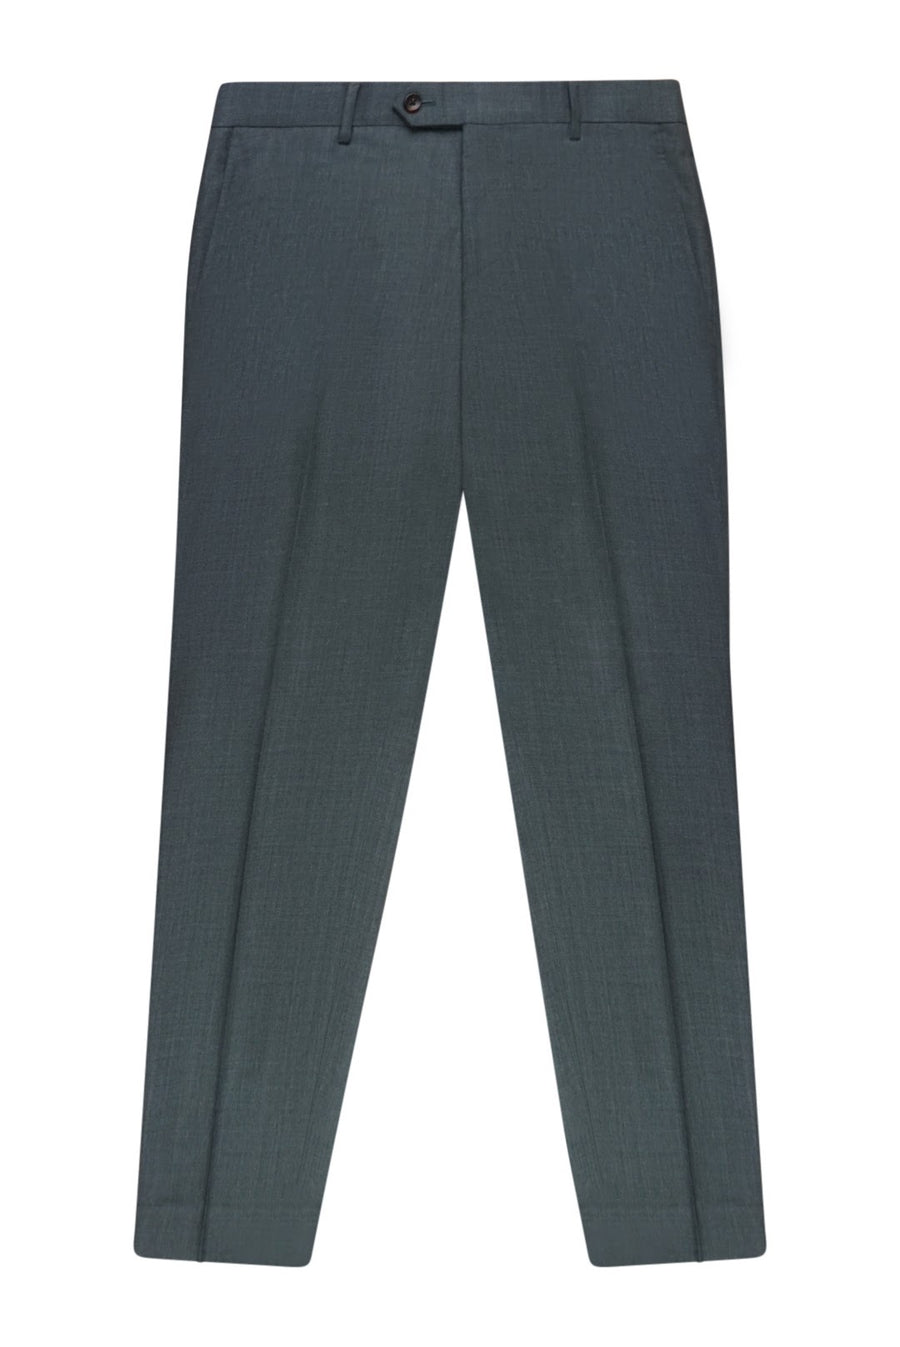 Medium Grey Slim Fit Suit Pant